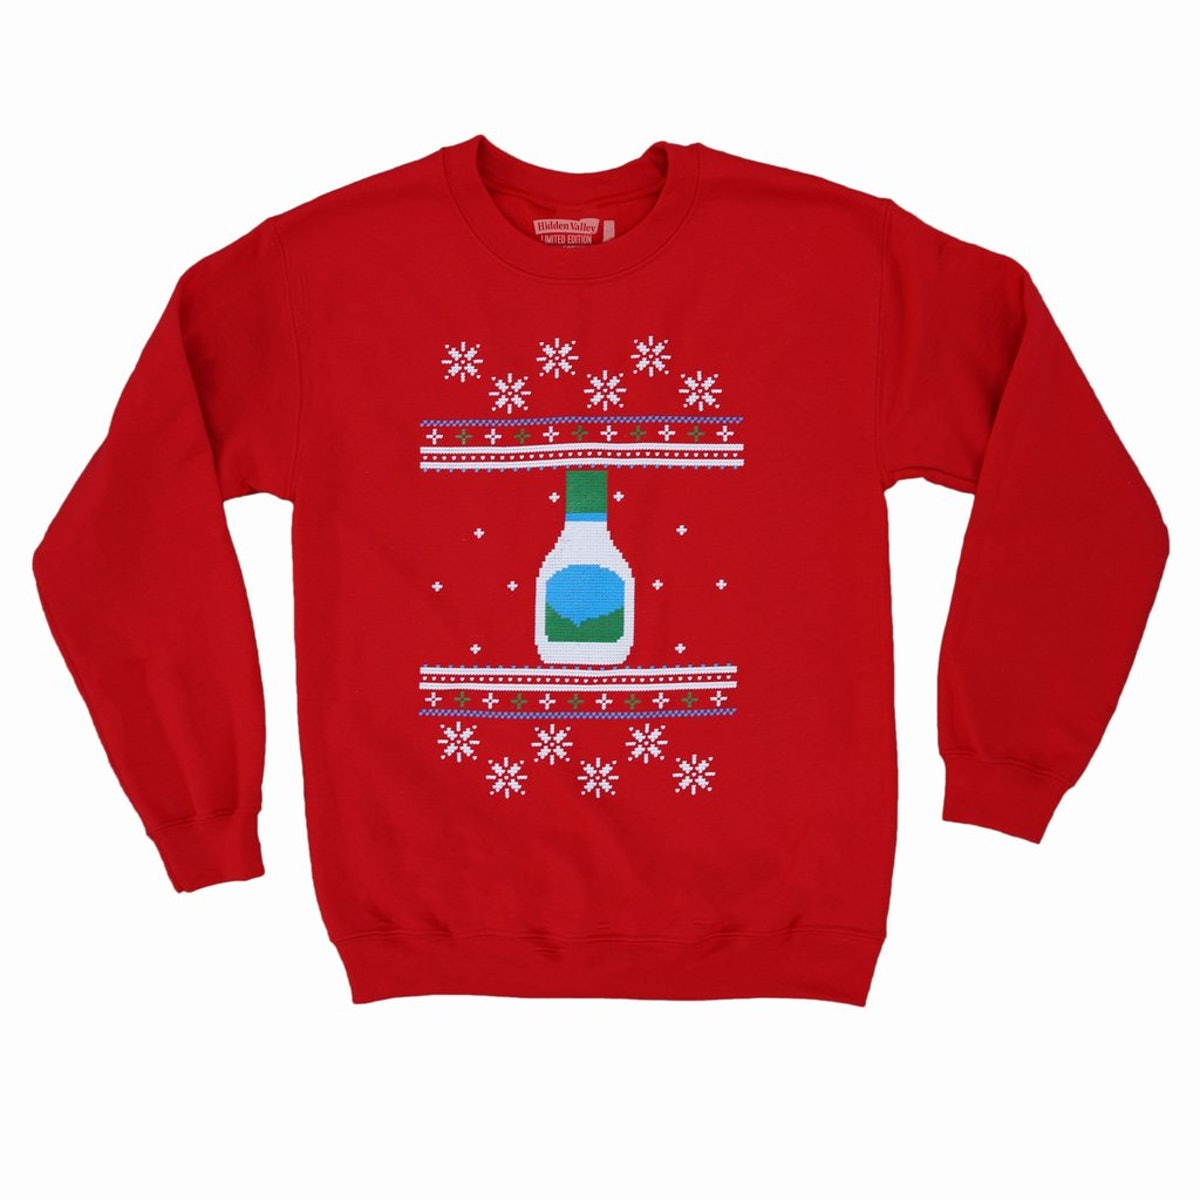 Hidden Valley - Not Your Ugly Christmas Sweater